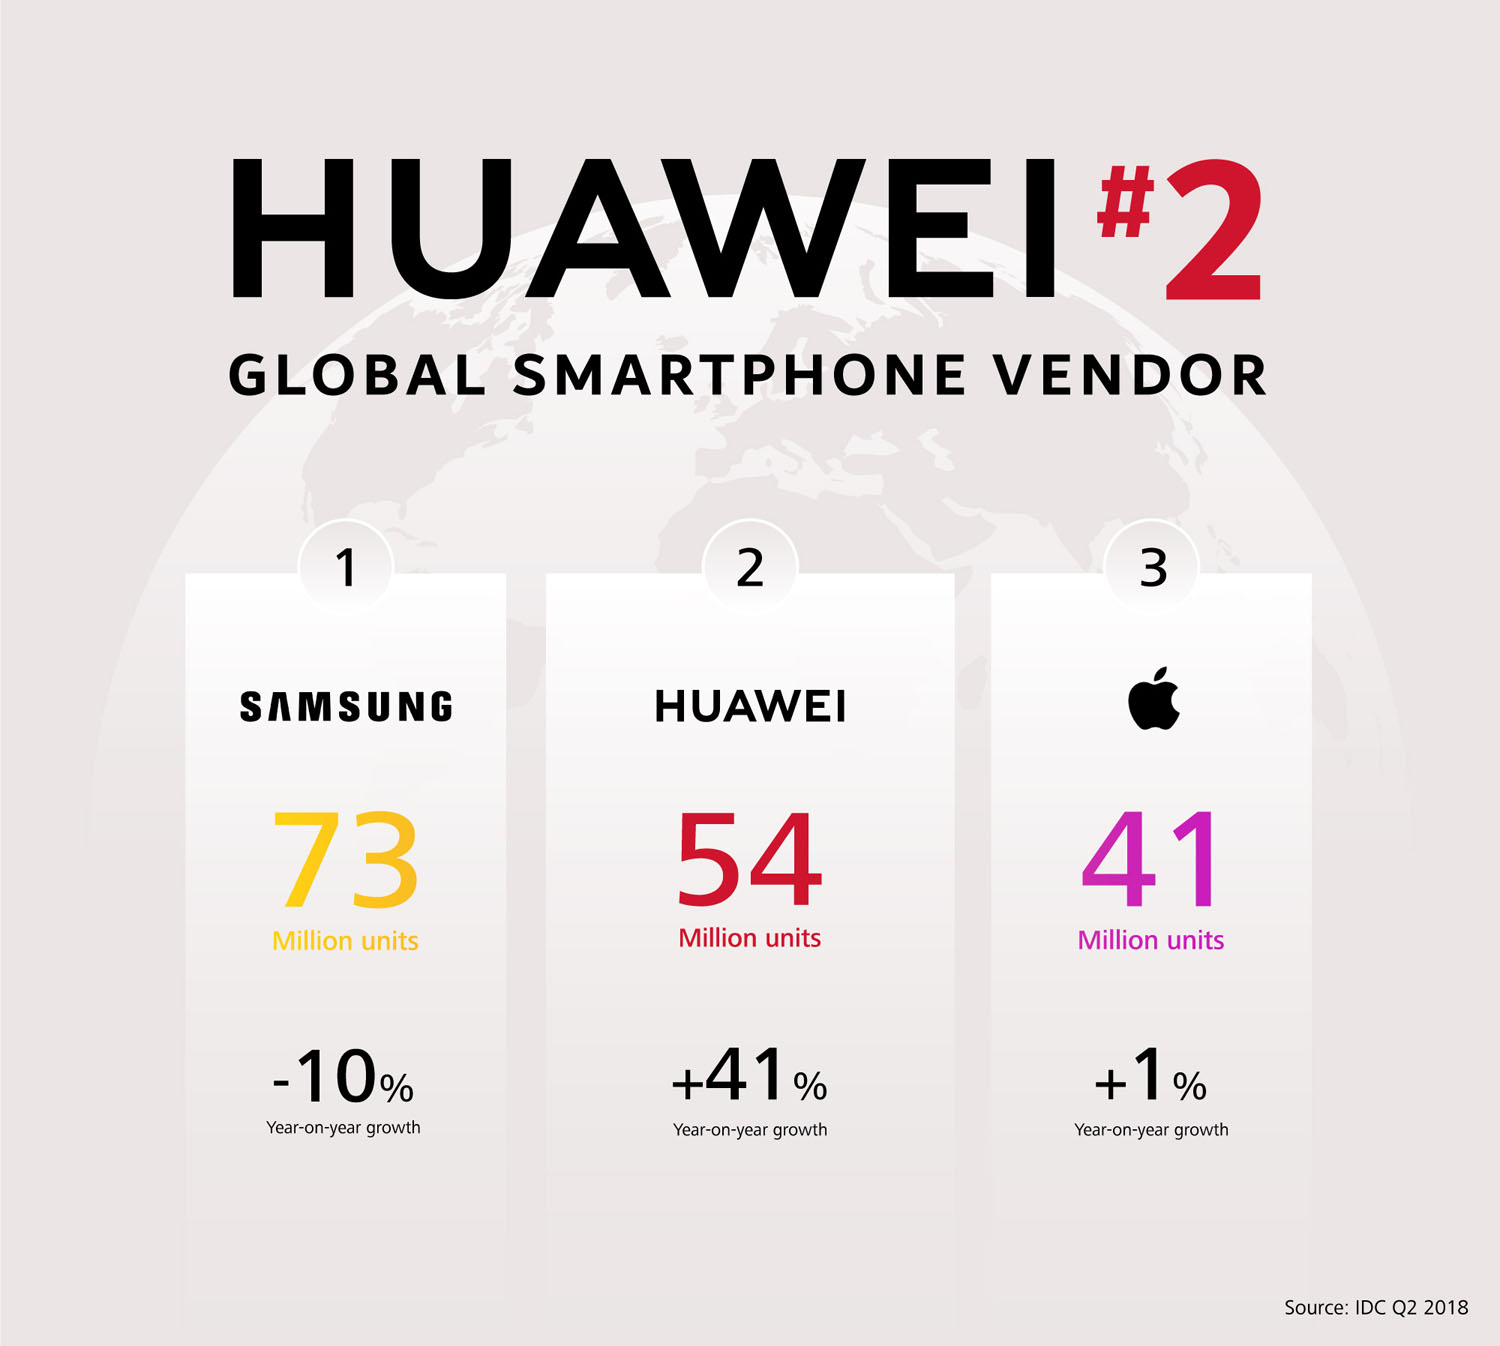 Huawei-Number-two-smartphone-vendor-globally.jpg